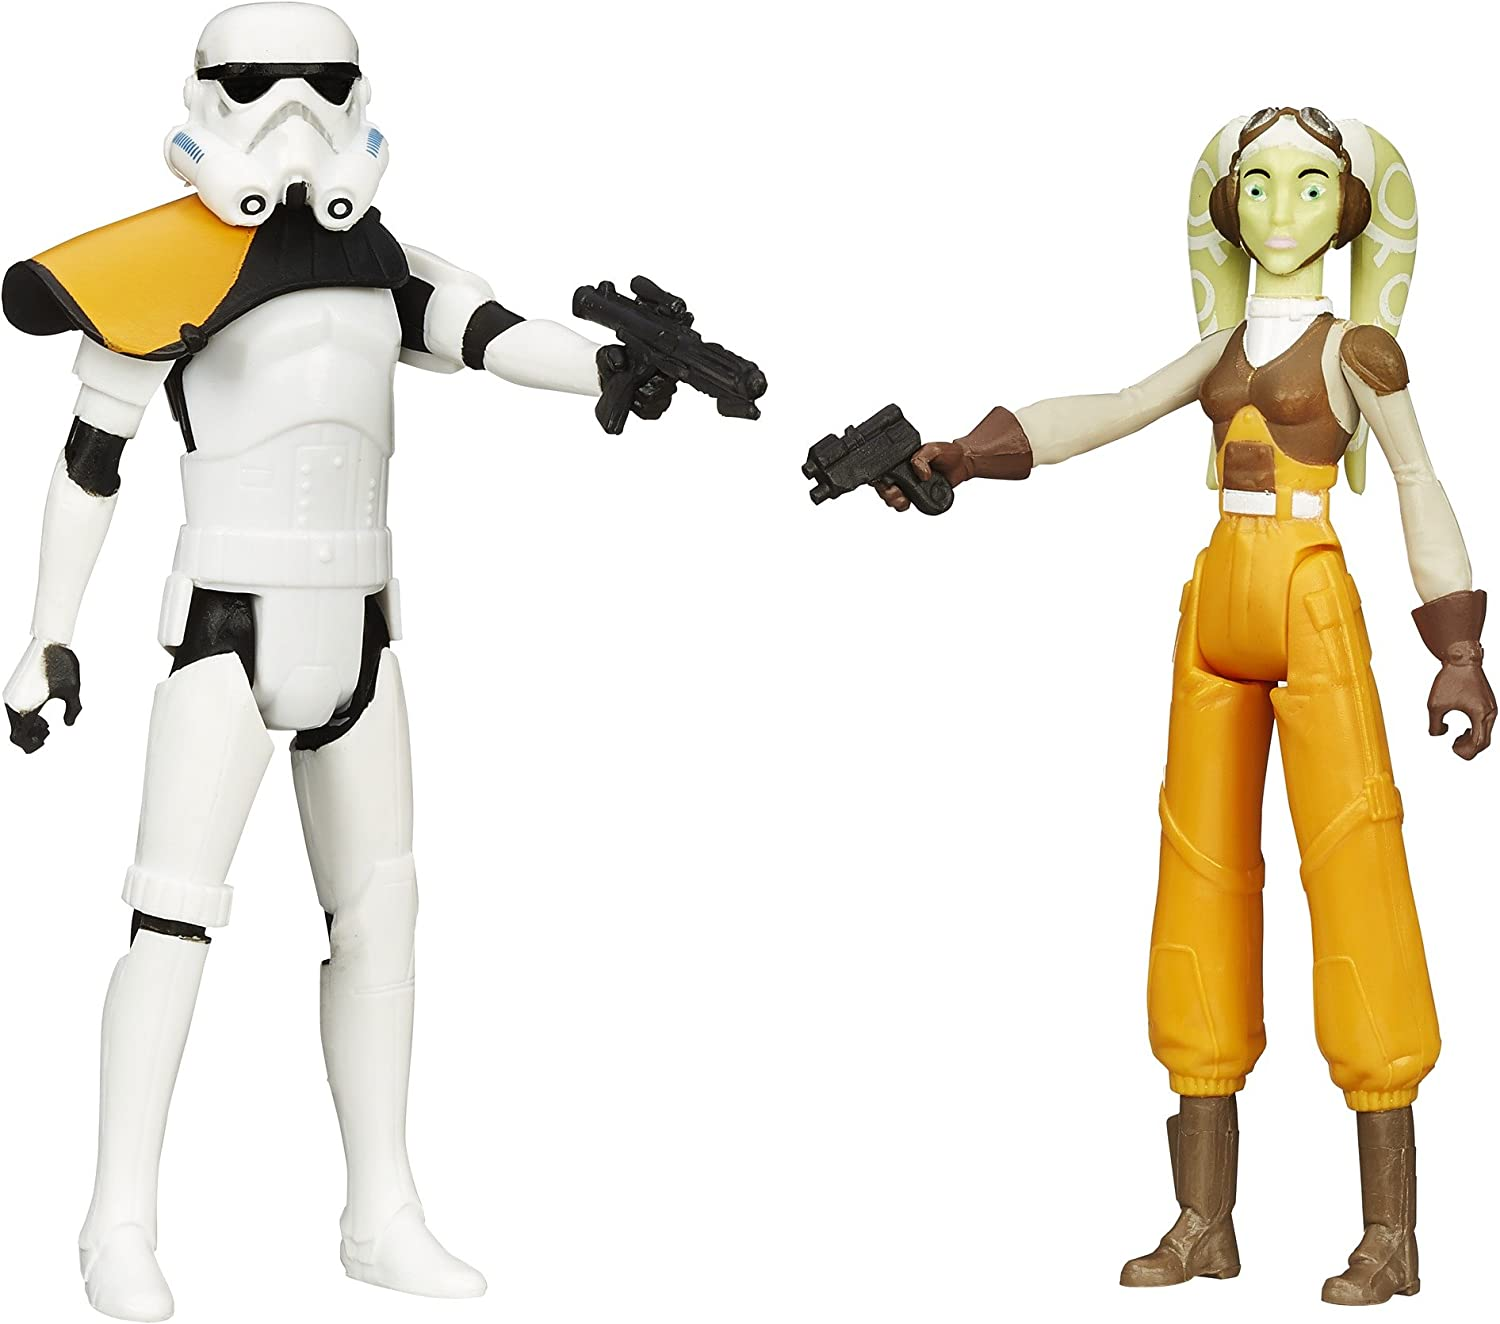 Star Wars Mission Series Hera Syndulla and Stormtrooper Commander Action Figures